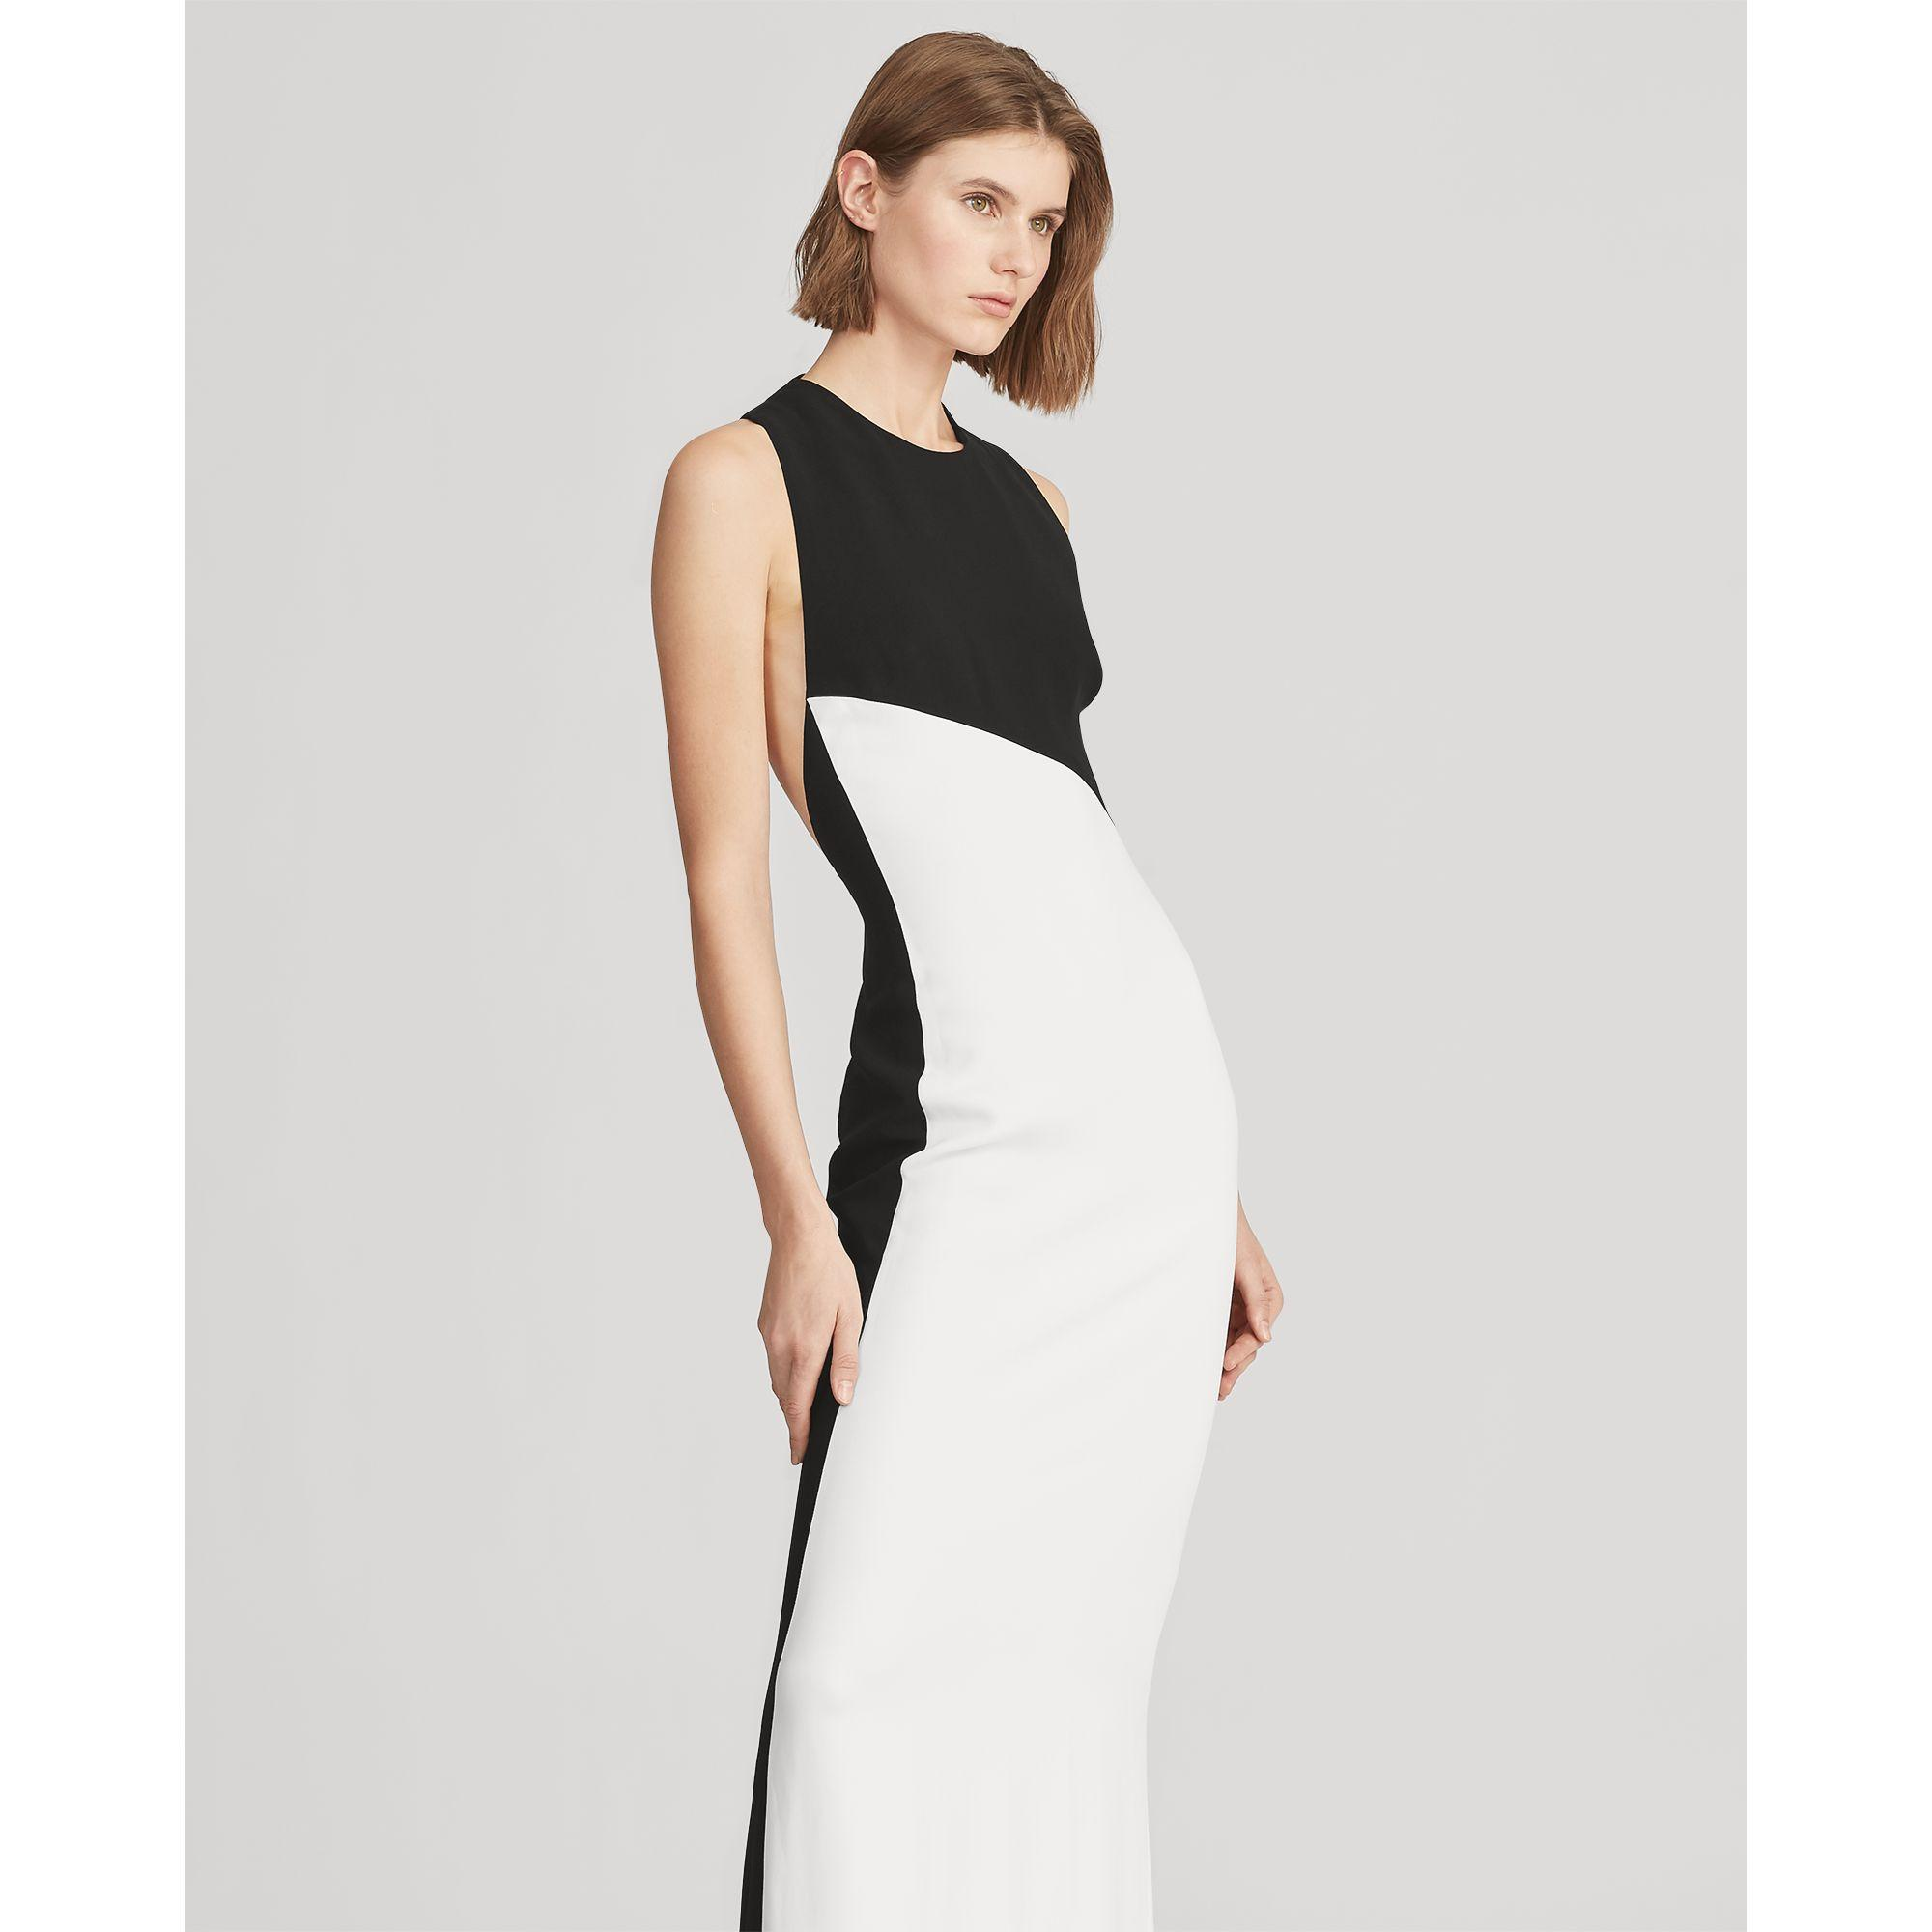 072b7f177ce60 Ralph Lauren Evening Gown Black And White